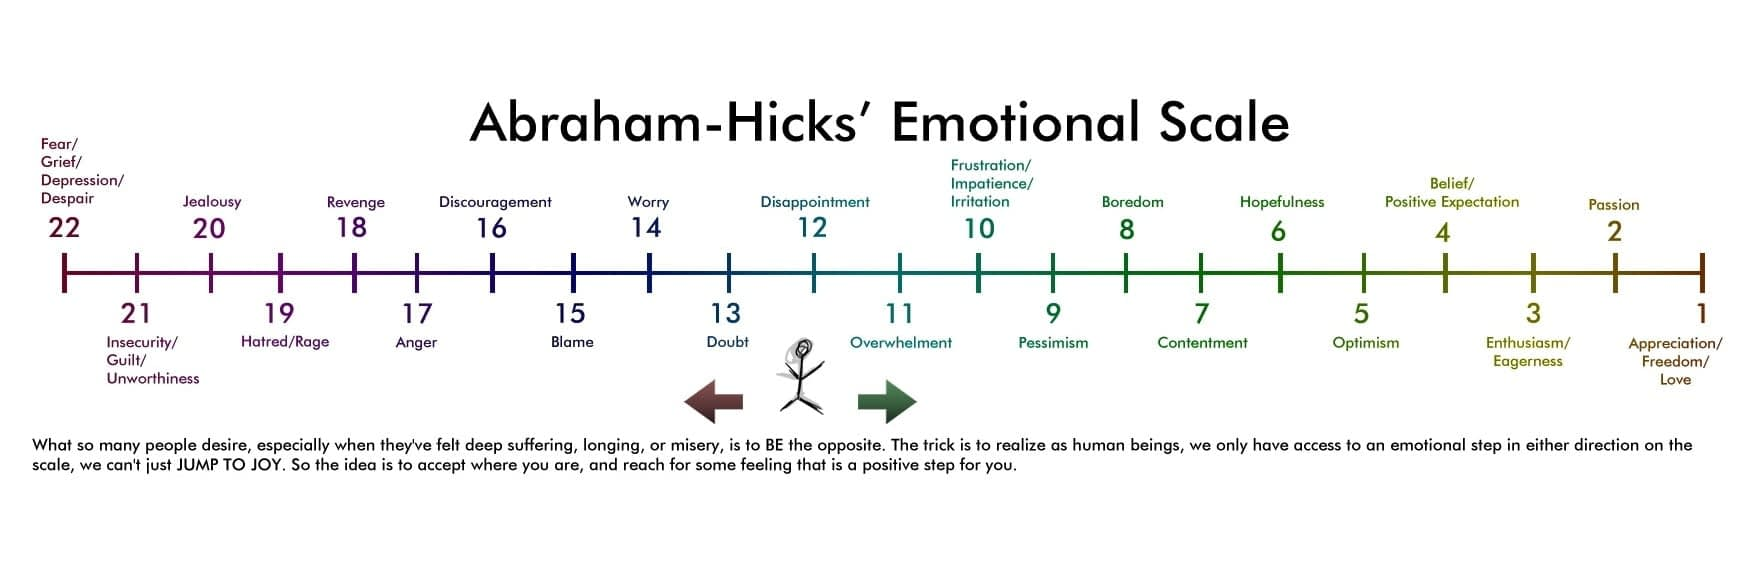 USe The emotional Guidance Scale